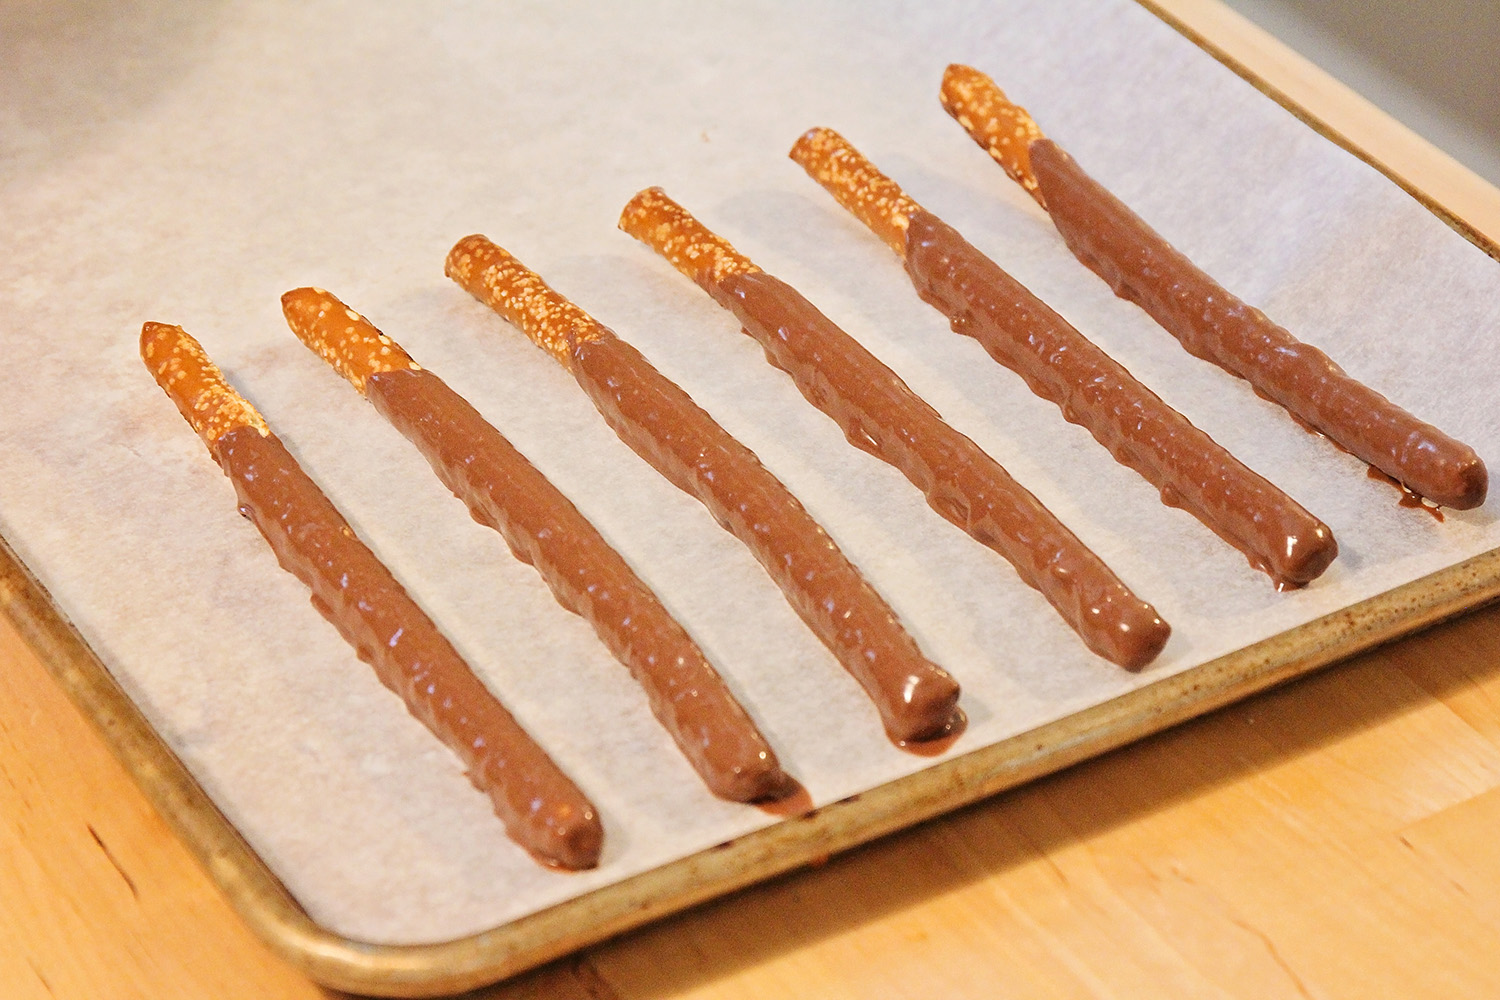 These edible wizard wands are so simple to make, and perfect for a Harry Potter party!